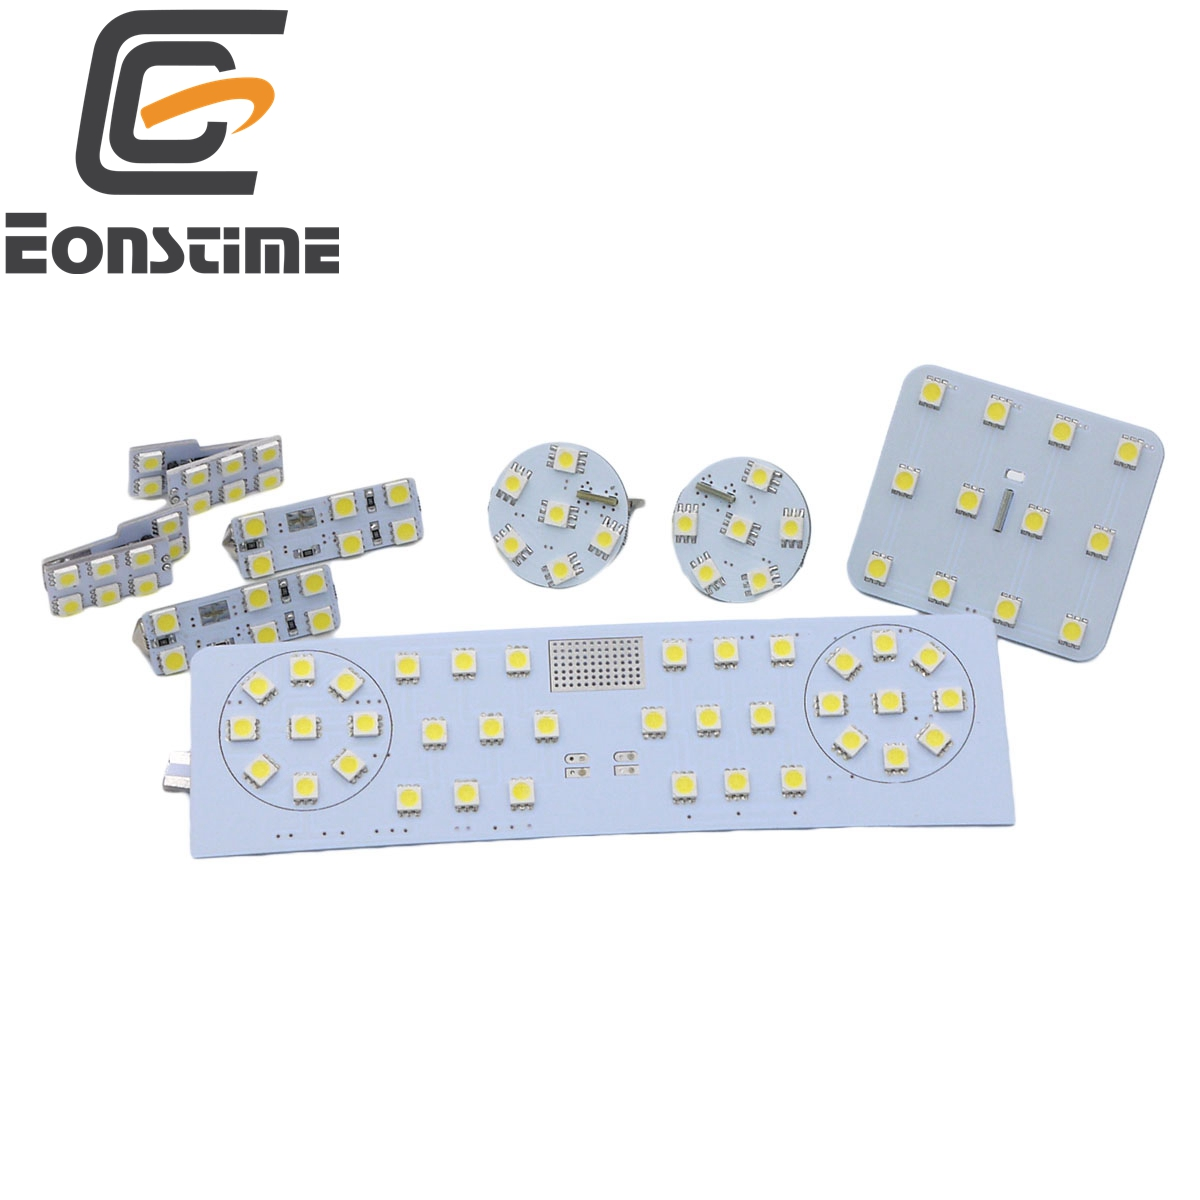 Eonstime 12V 8pcs/set SMD 5050 Car Interior Dome Light Reading Light For Volkswagen VW Passat B6 B7 2008 2009 2010 2015 6500K